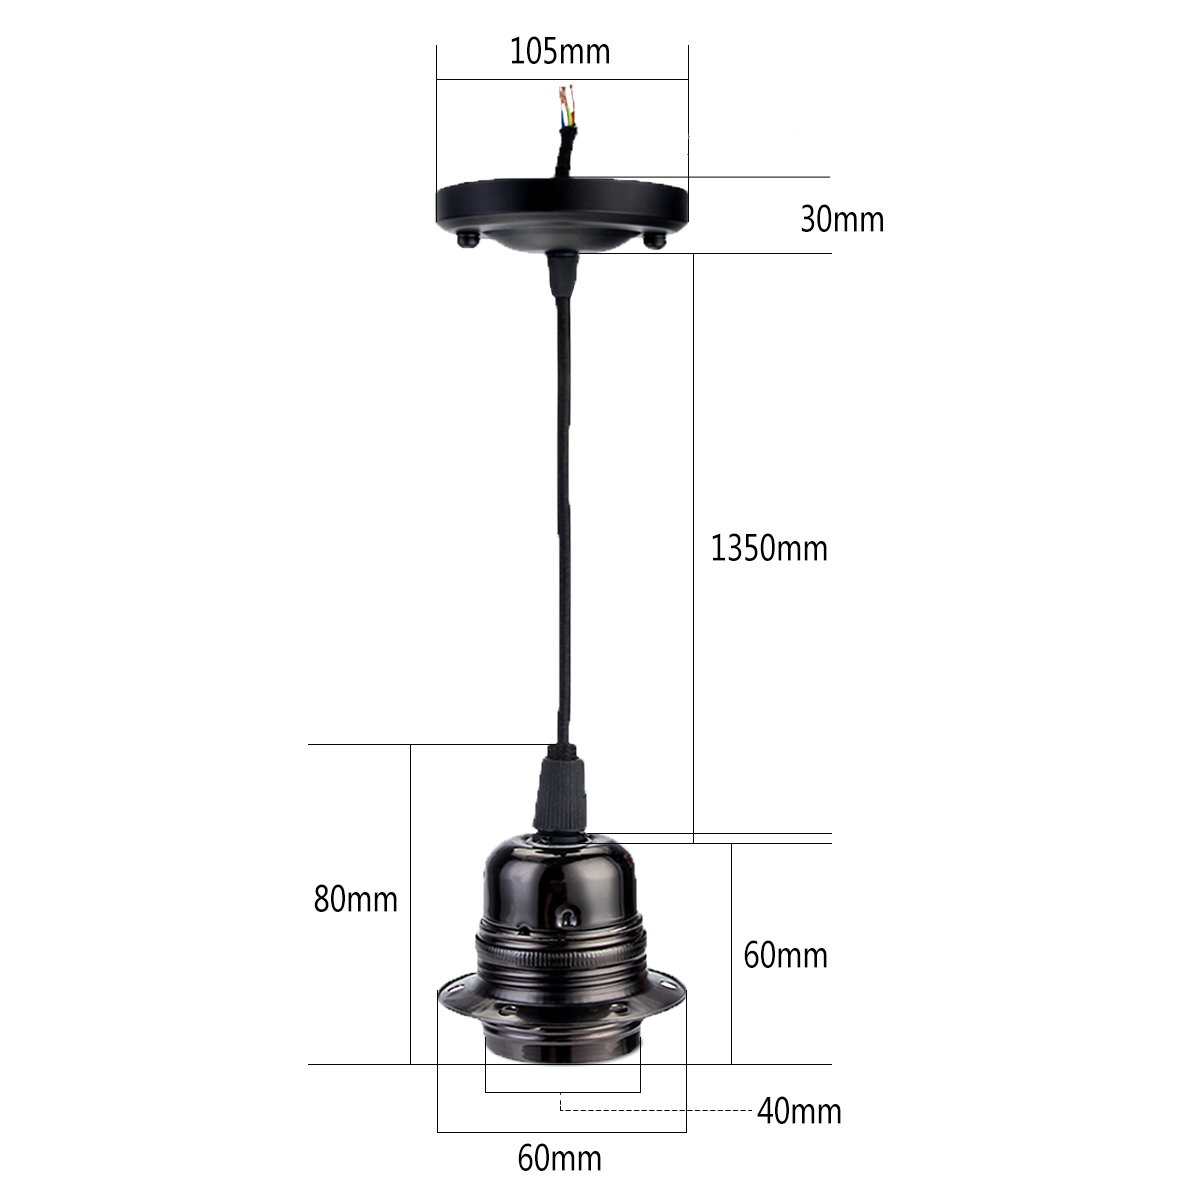 Greensun Vintage Edison E27 Lamp Holder Retro Industrial Style Voltage Ac Pendant Light Socket Without Wire Ceiling Hanging Bulb Adaptor